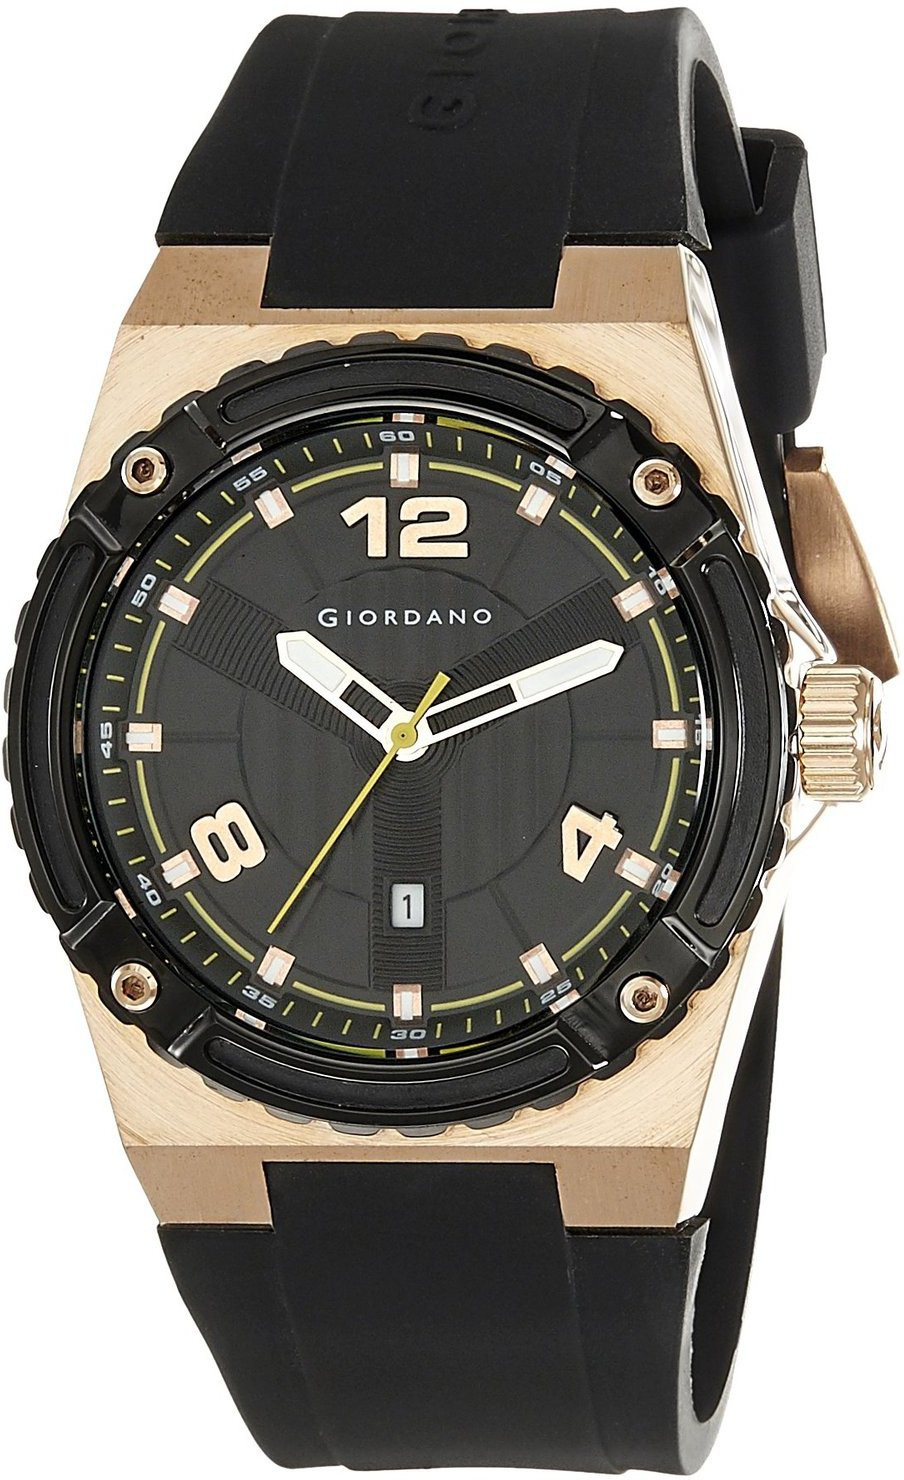 Deals - Delhi - Minimum 50% Off <br> Watches<br> Category - watches<br> Business - Flipkart.com